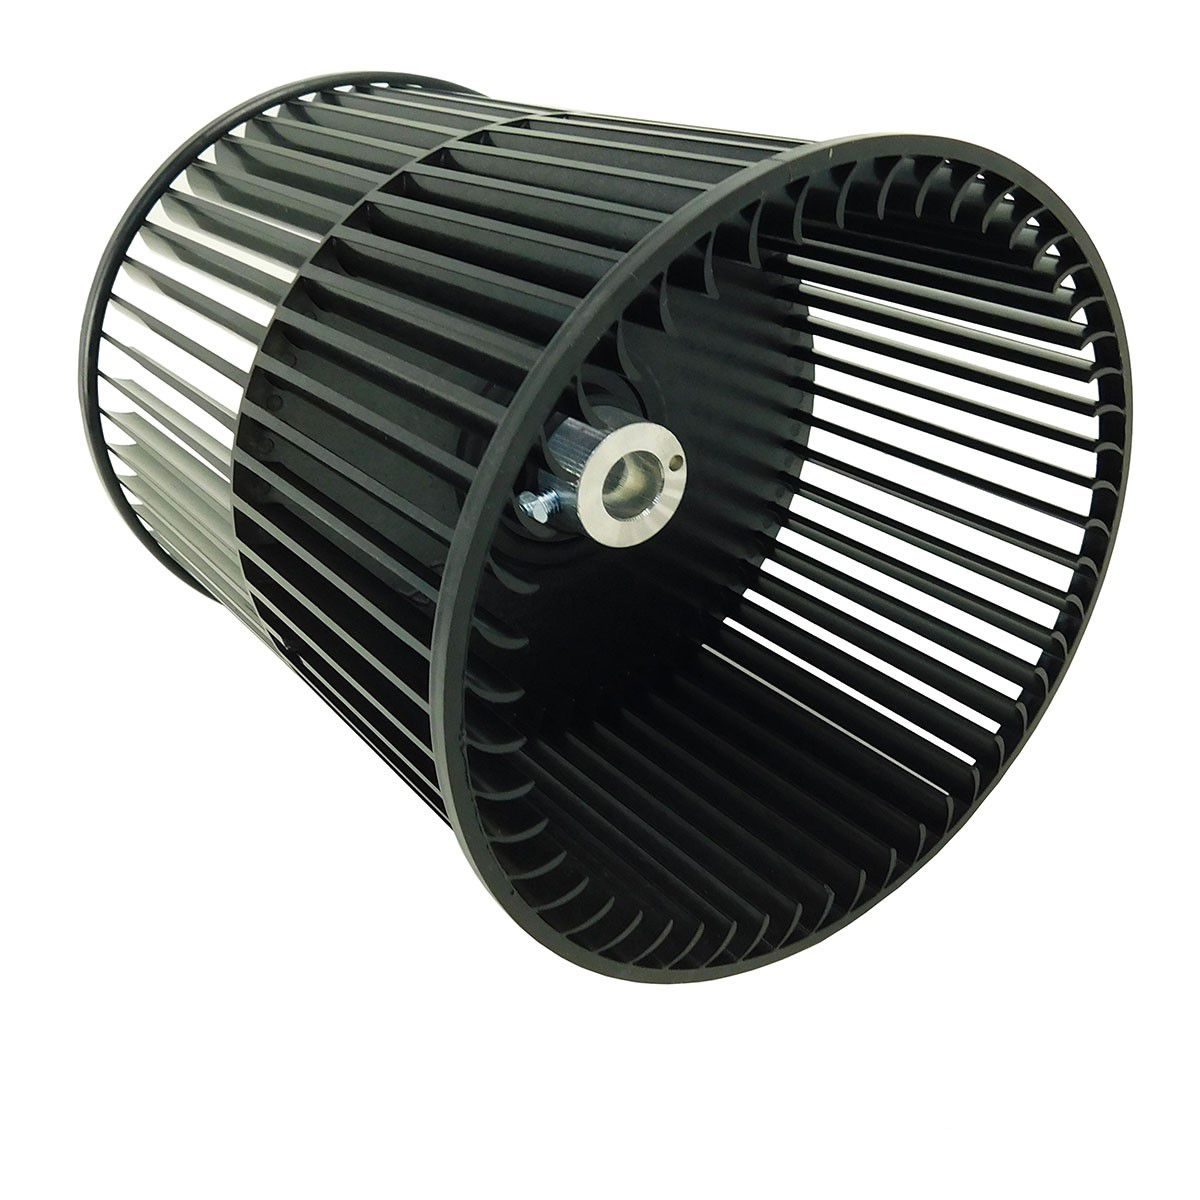 Turbina do Ventilador RPC 48.000 e 60.000 Btus Piso Teto Hitachi CF0048029